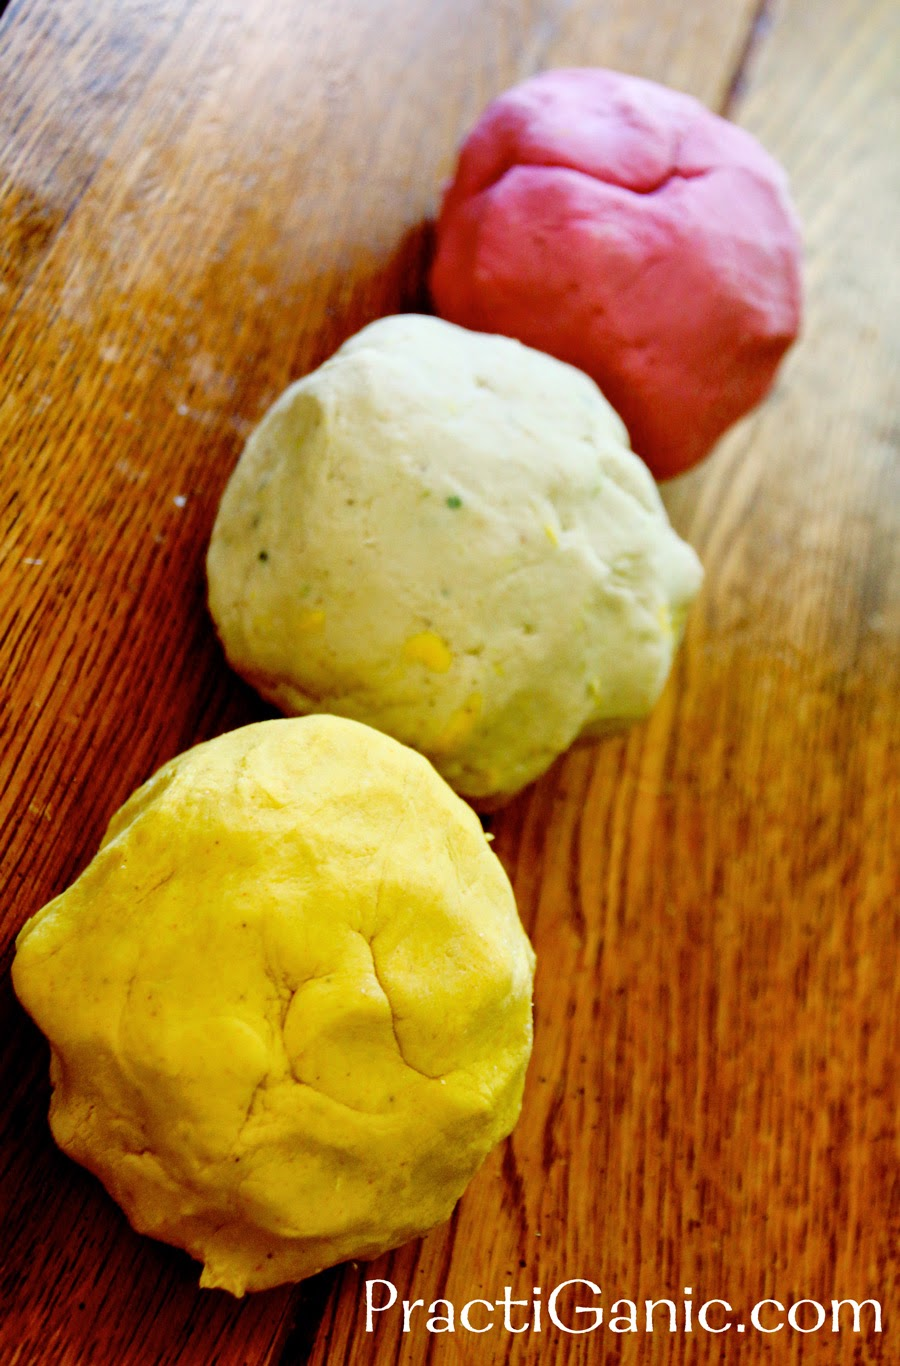 Homemade Natural No-Bake Playdough